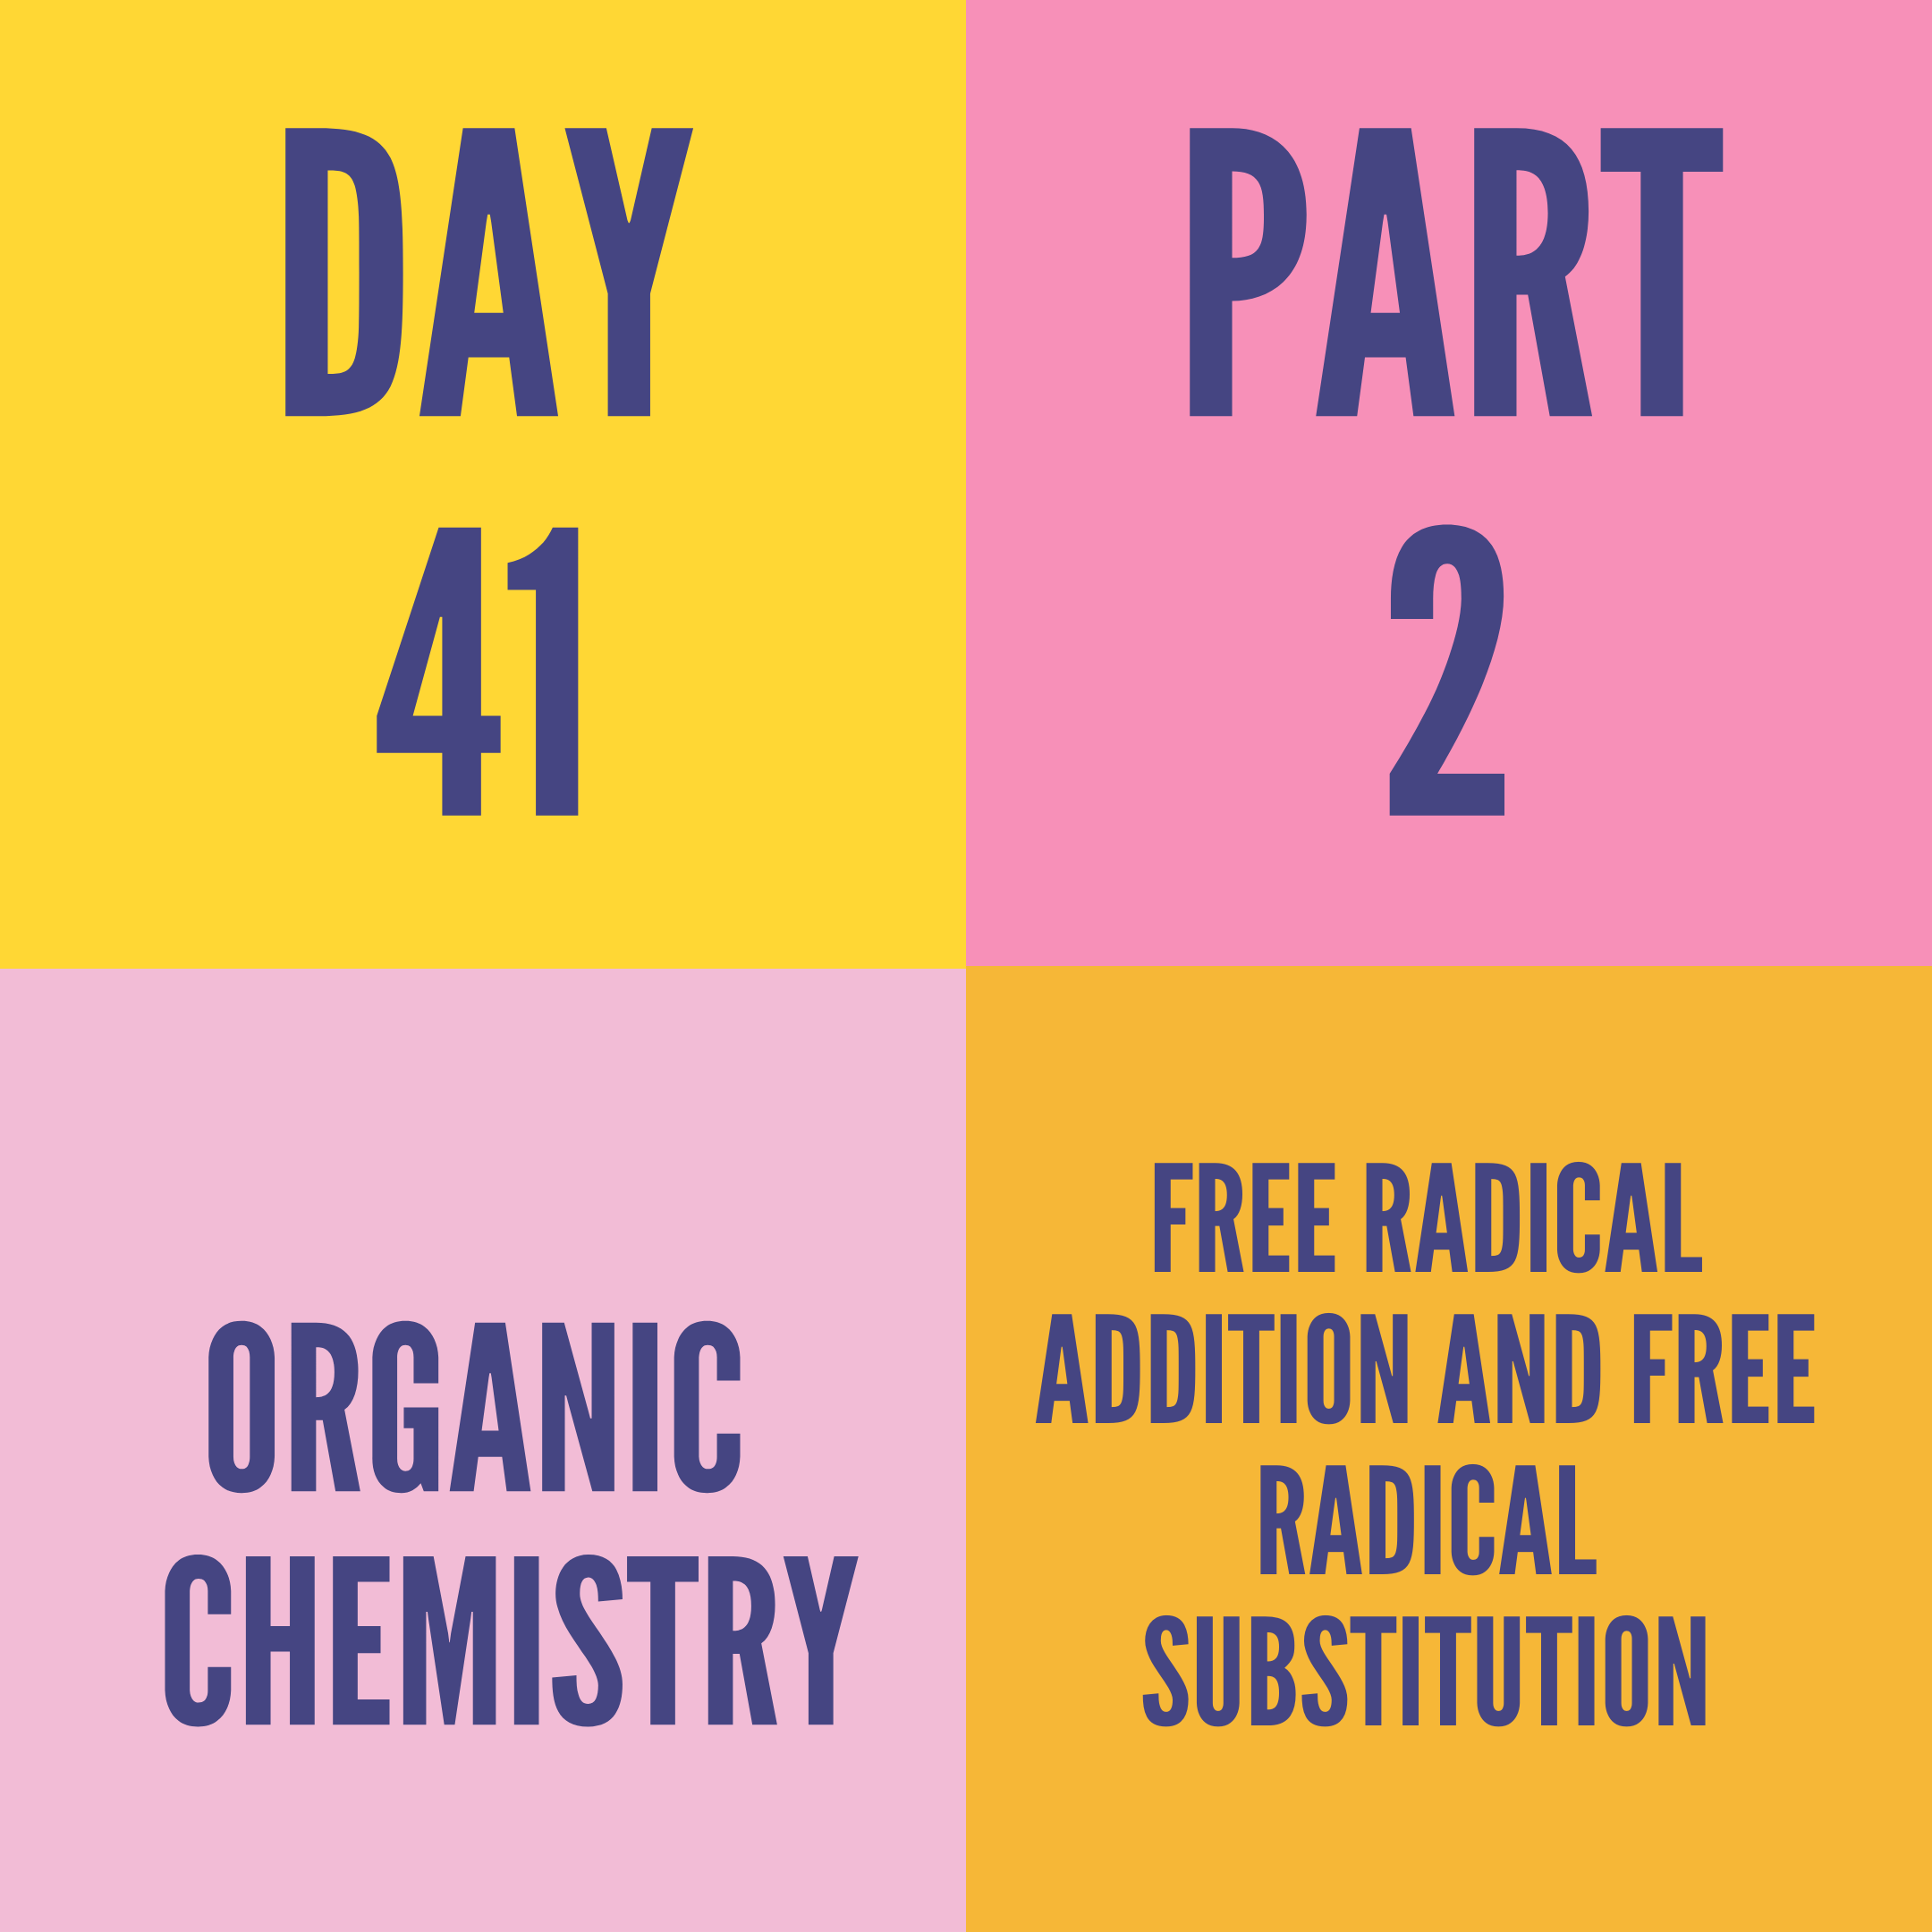 DAY-41 PART-2  FREE RADICAL ADDITION AND FREE RADICAL SUBSTITUTION